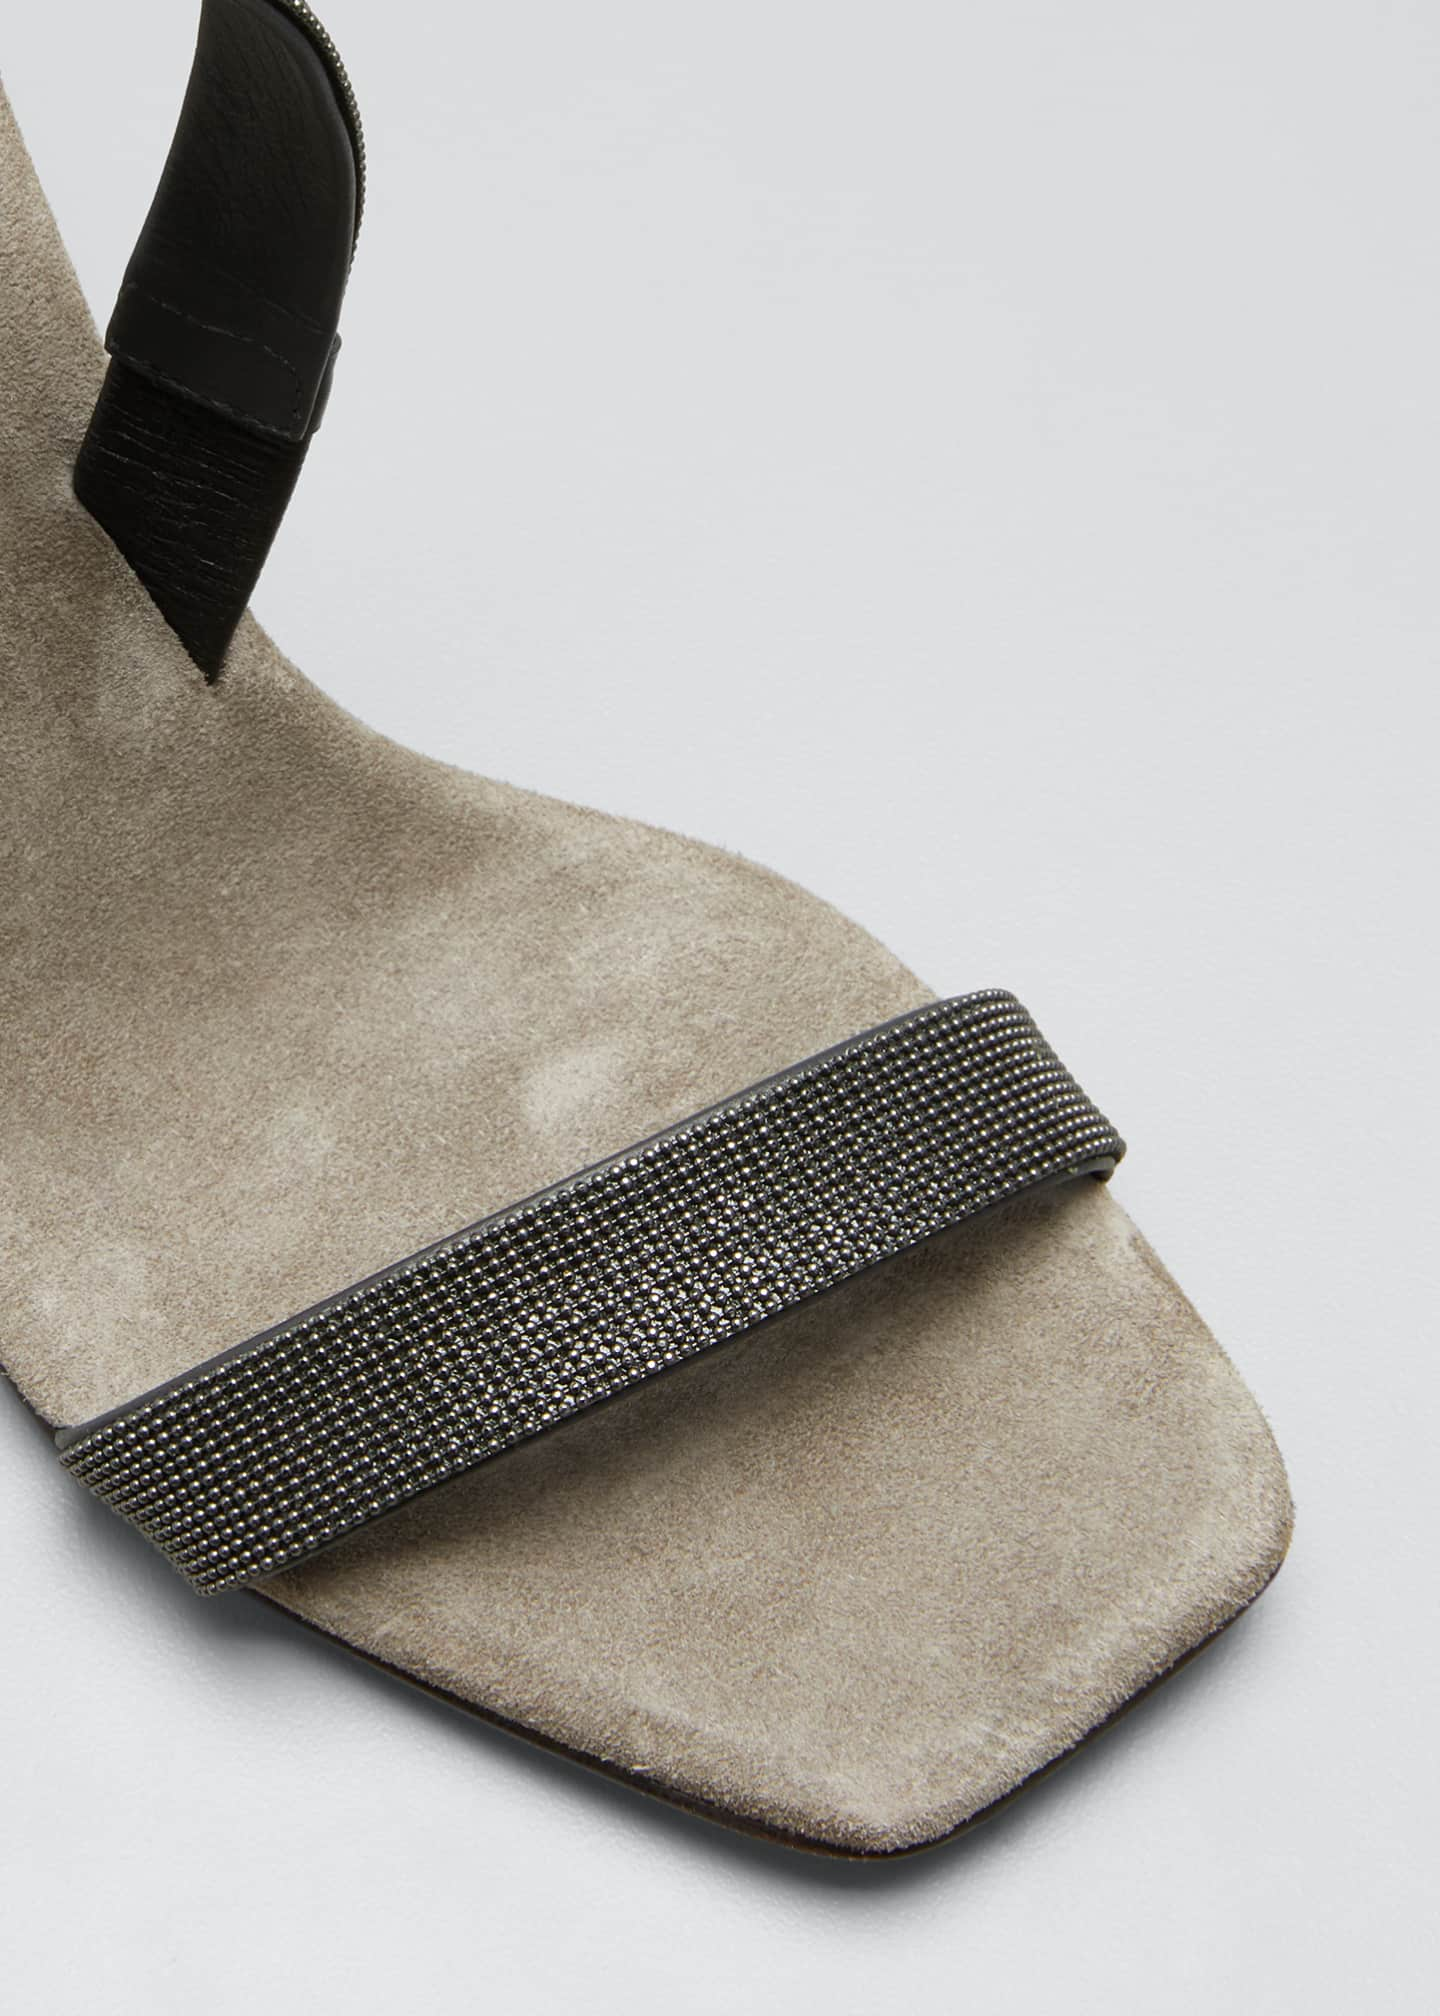 Image 5 of 5: Suede Slingback Sandals With Monili Straps